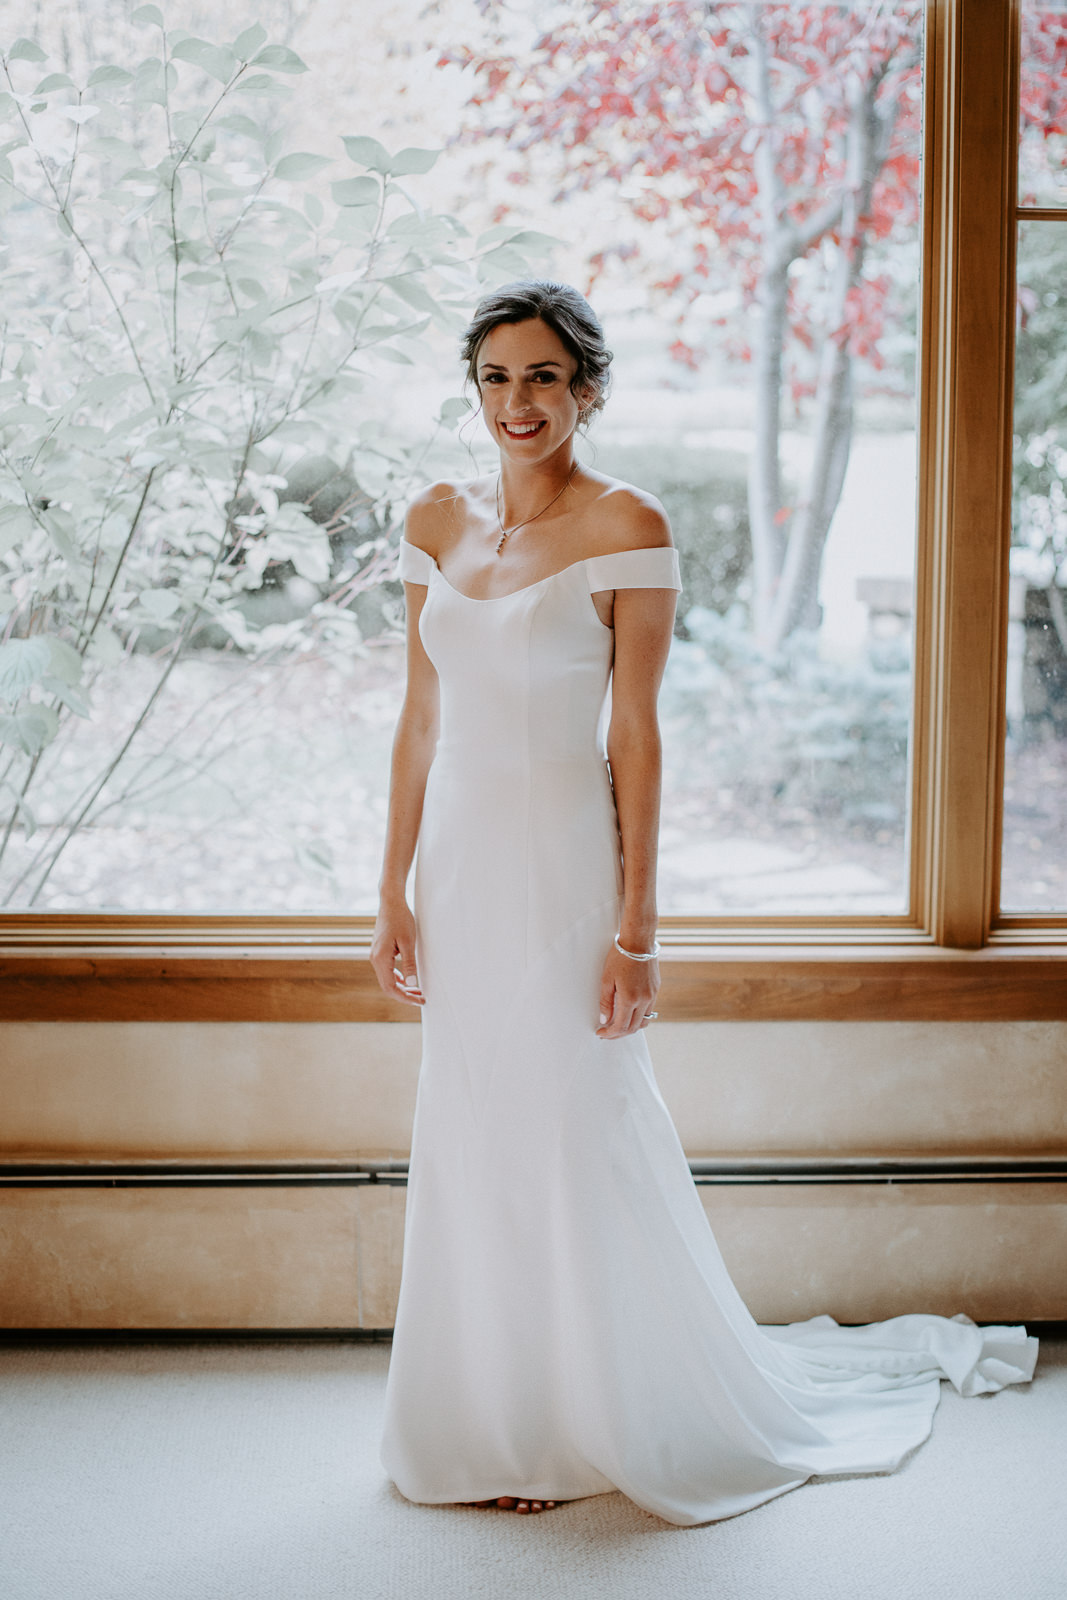 Full body portrait of bride in minimal and classy wedding dress